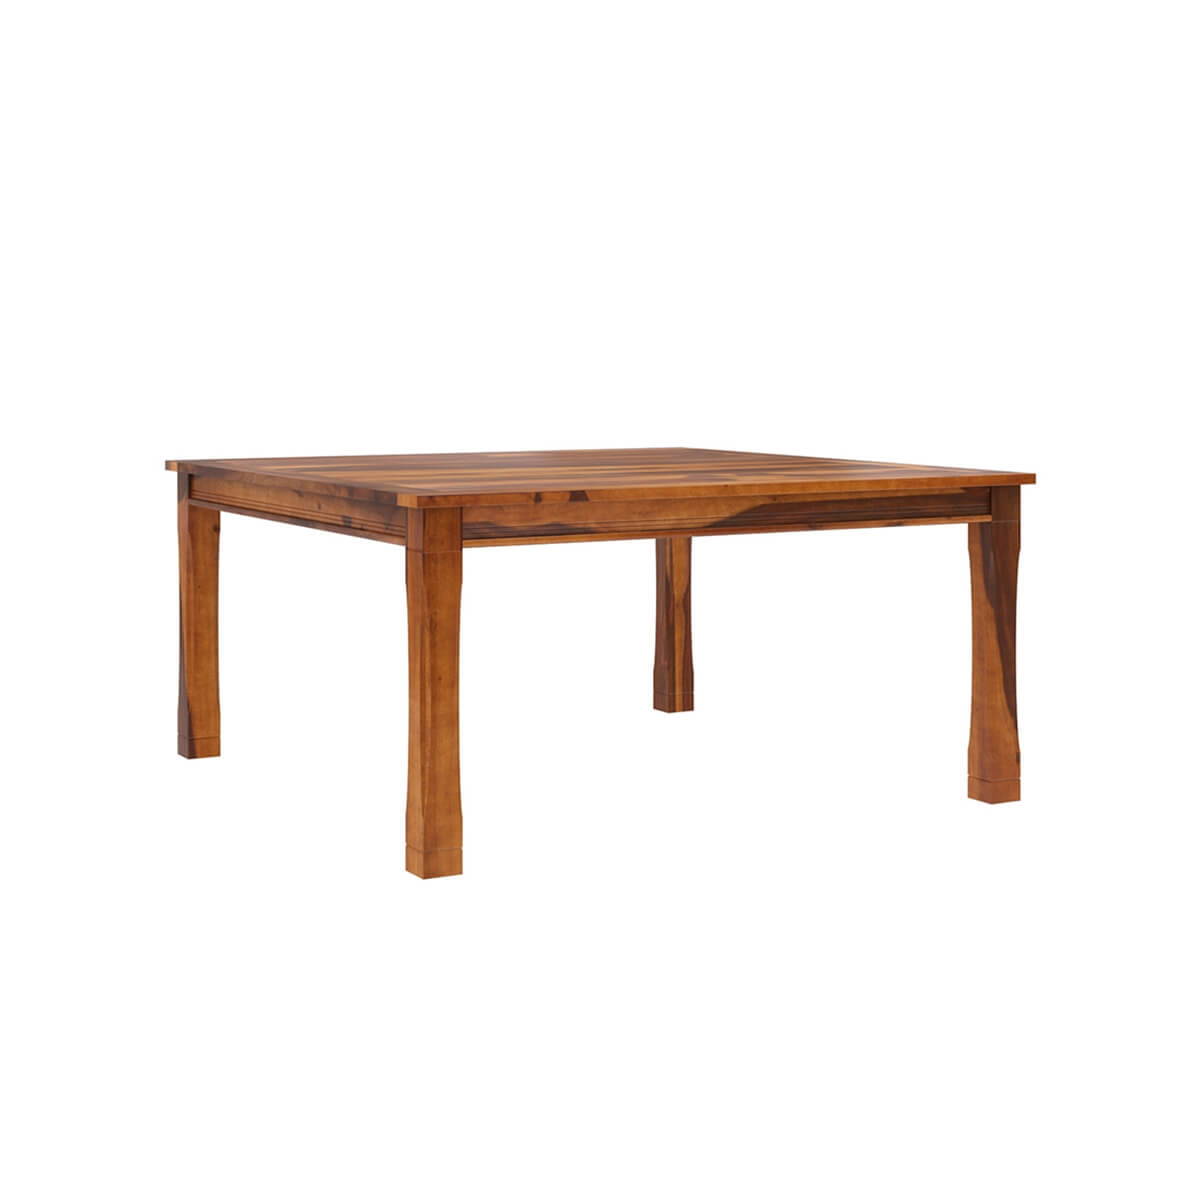 8 Person Square Dining Table: Dallas Ranch Transitional Square Wood Dining Room Table For 8 People